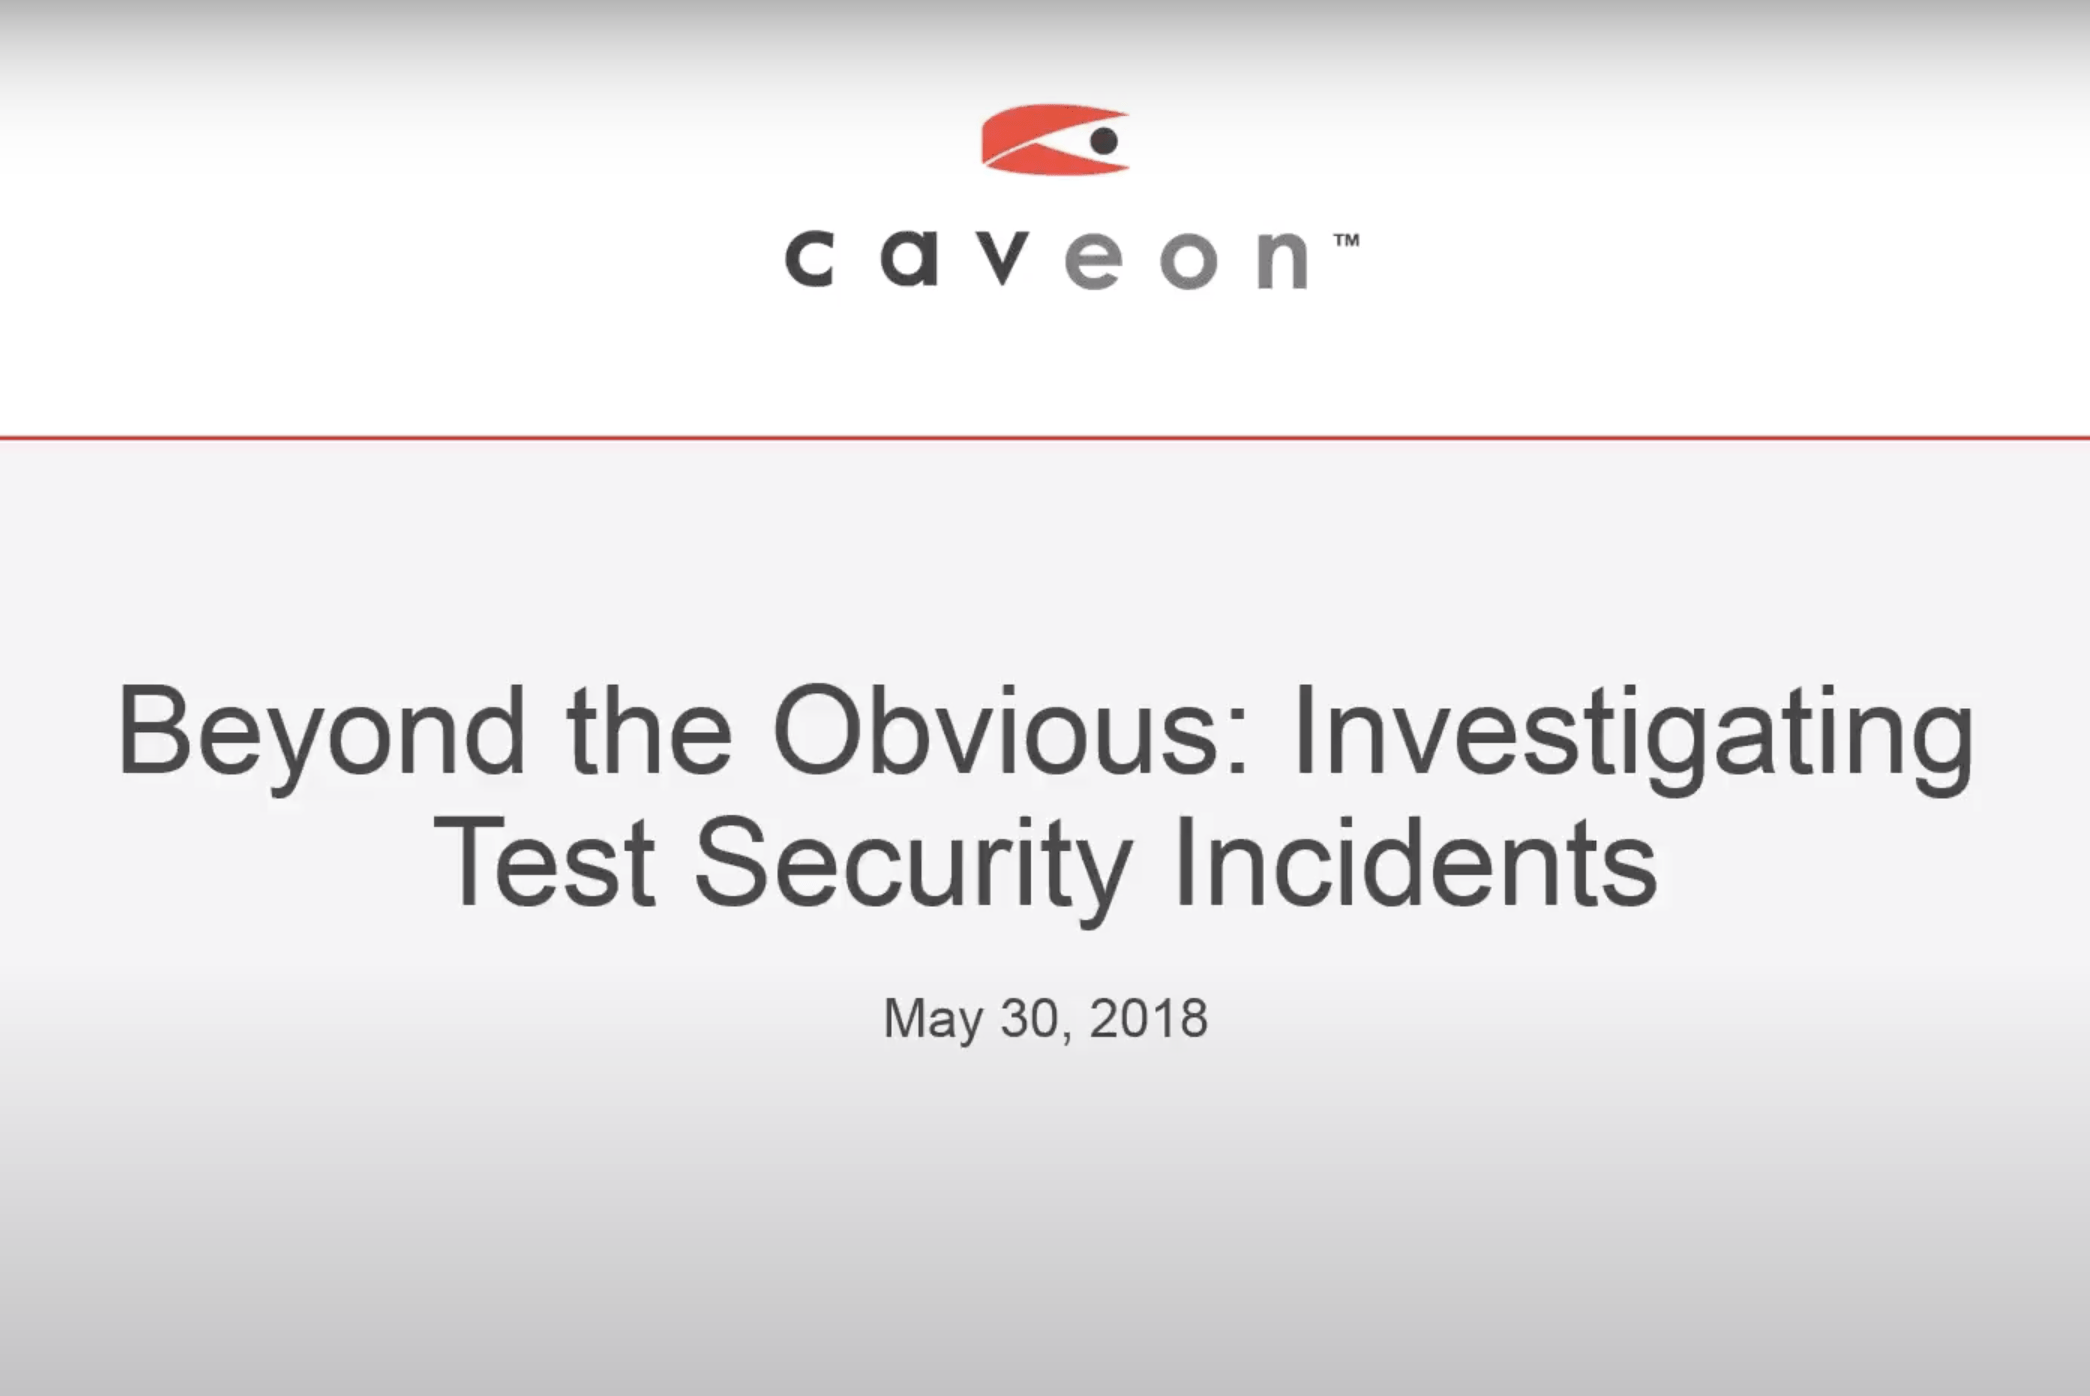 Beyond the Obvious: Investigating Test Security Incidents